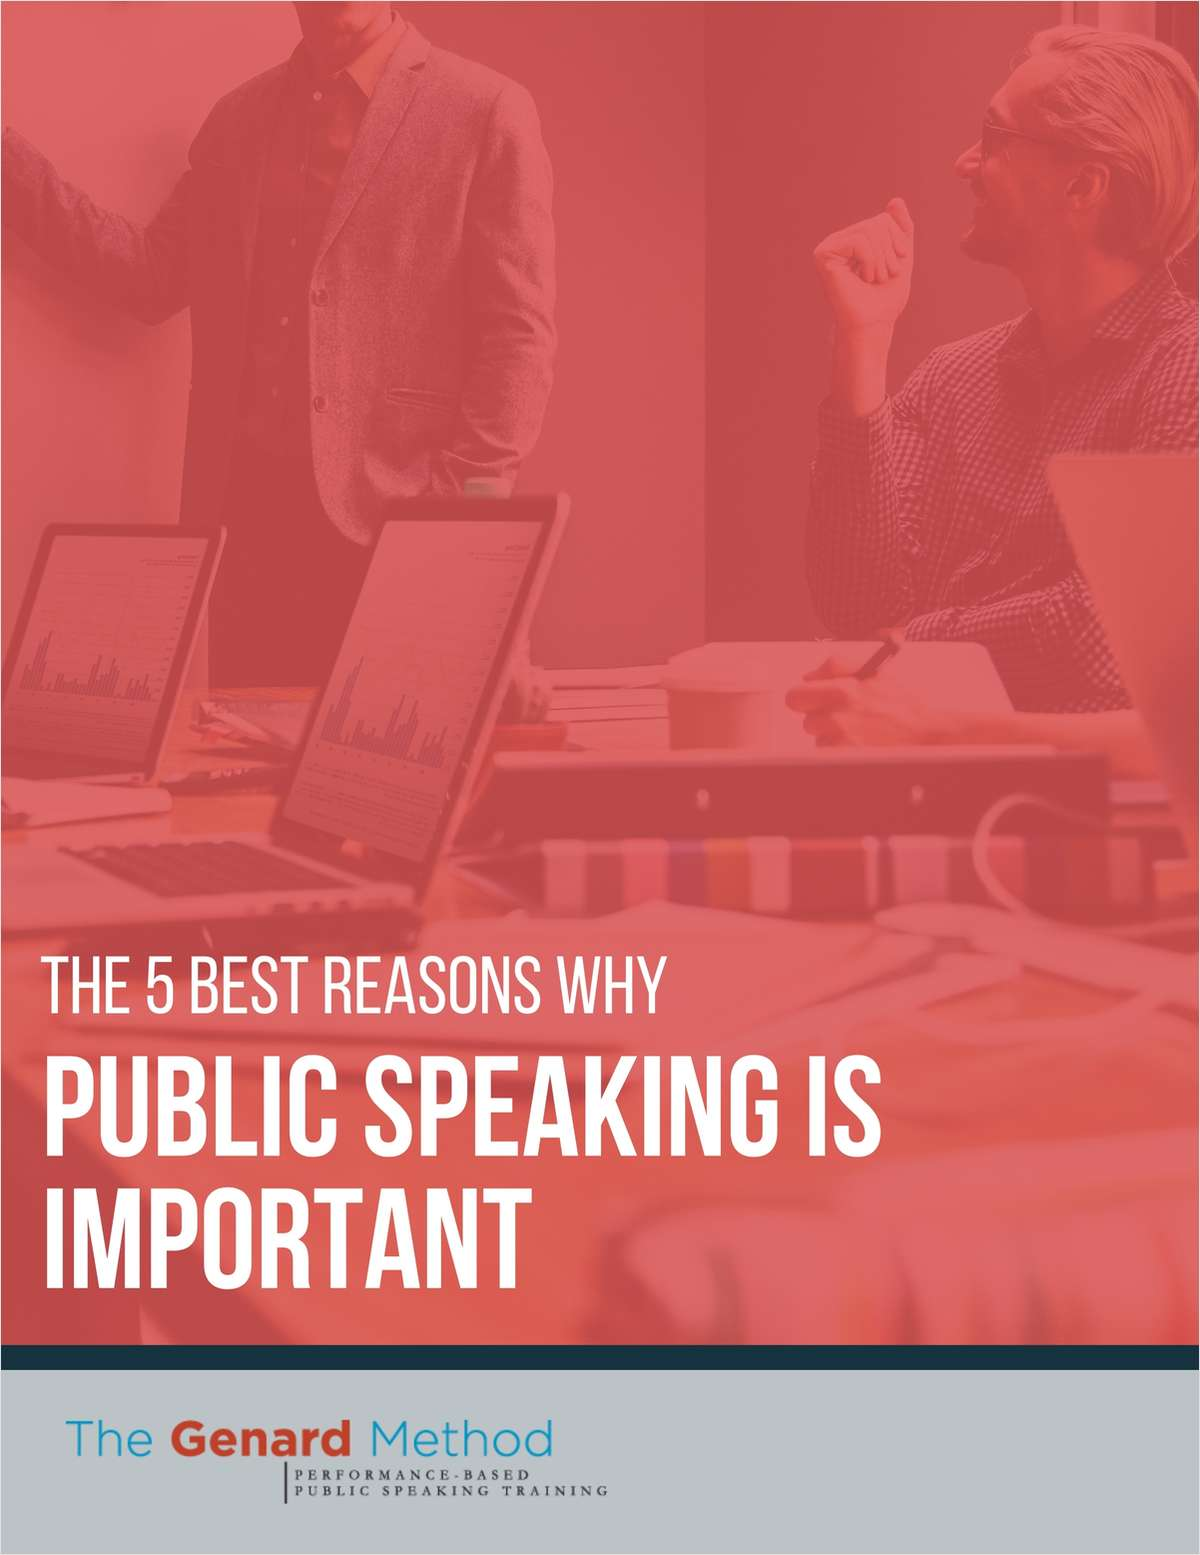 The 5 Best Reasons Why Public Speaking Is Important